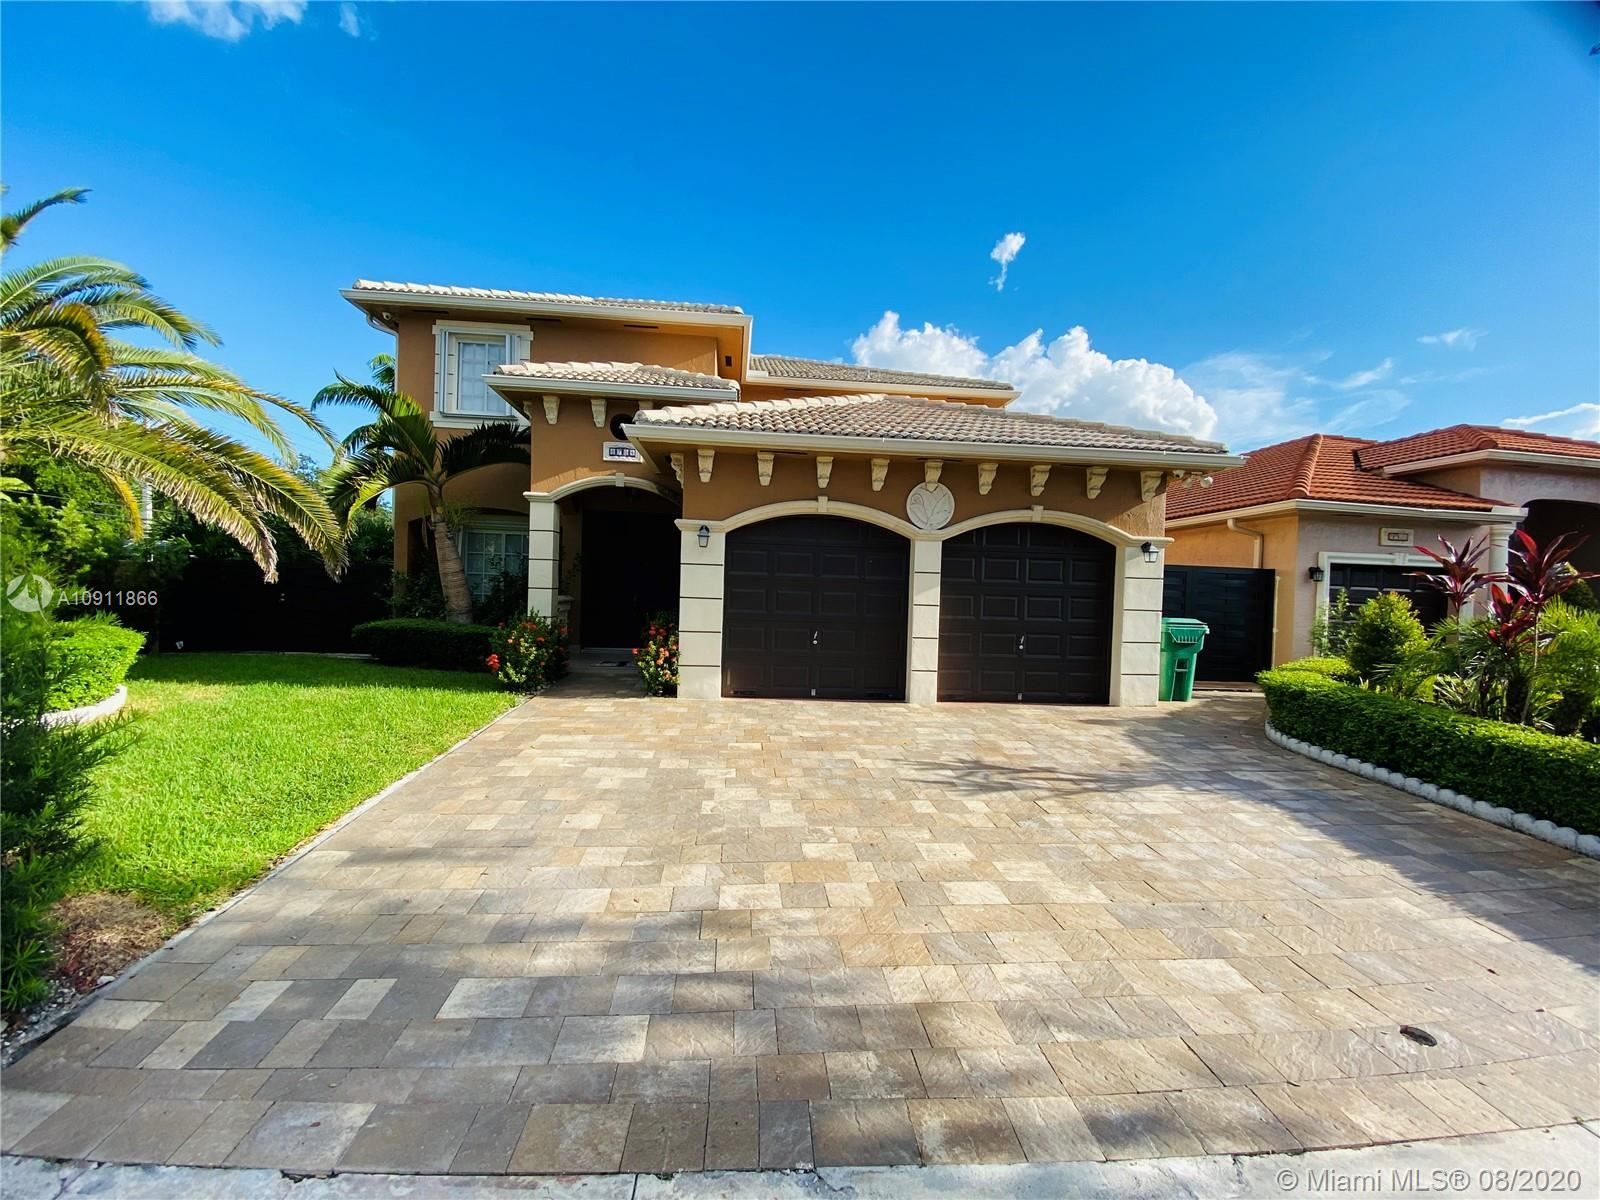 8704 NW 147th Ln, Miami Lakes, FL 33018 - #: A10911866